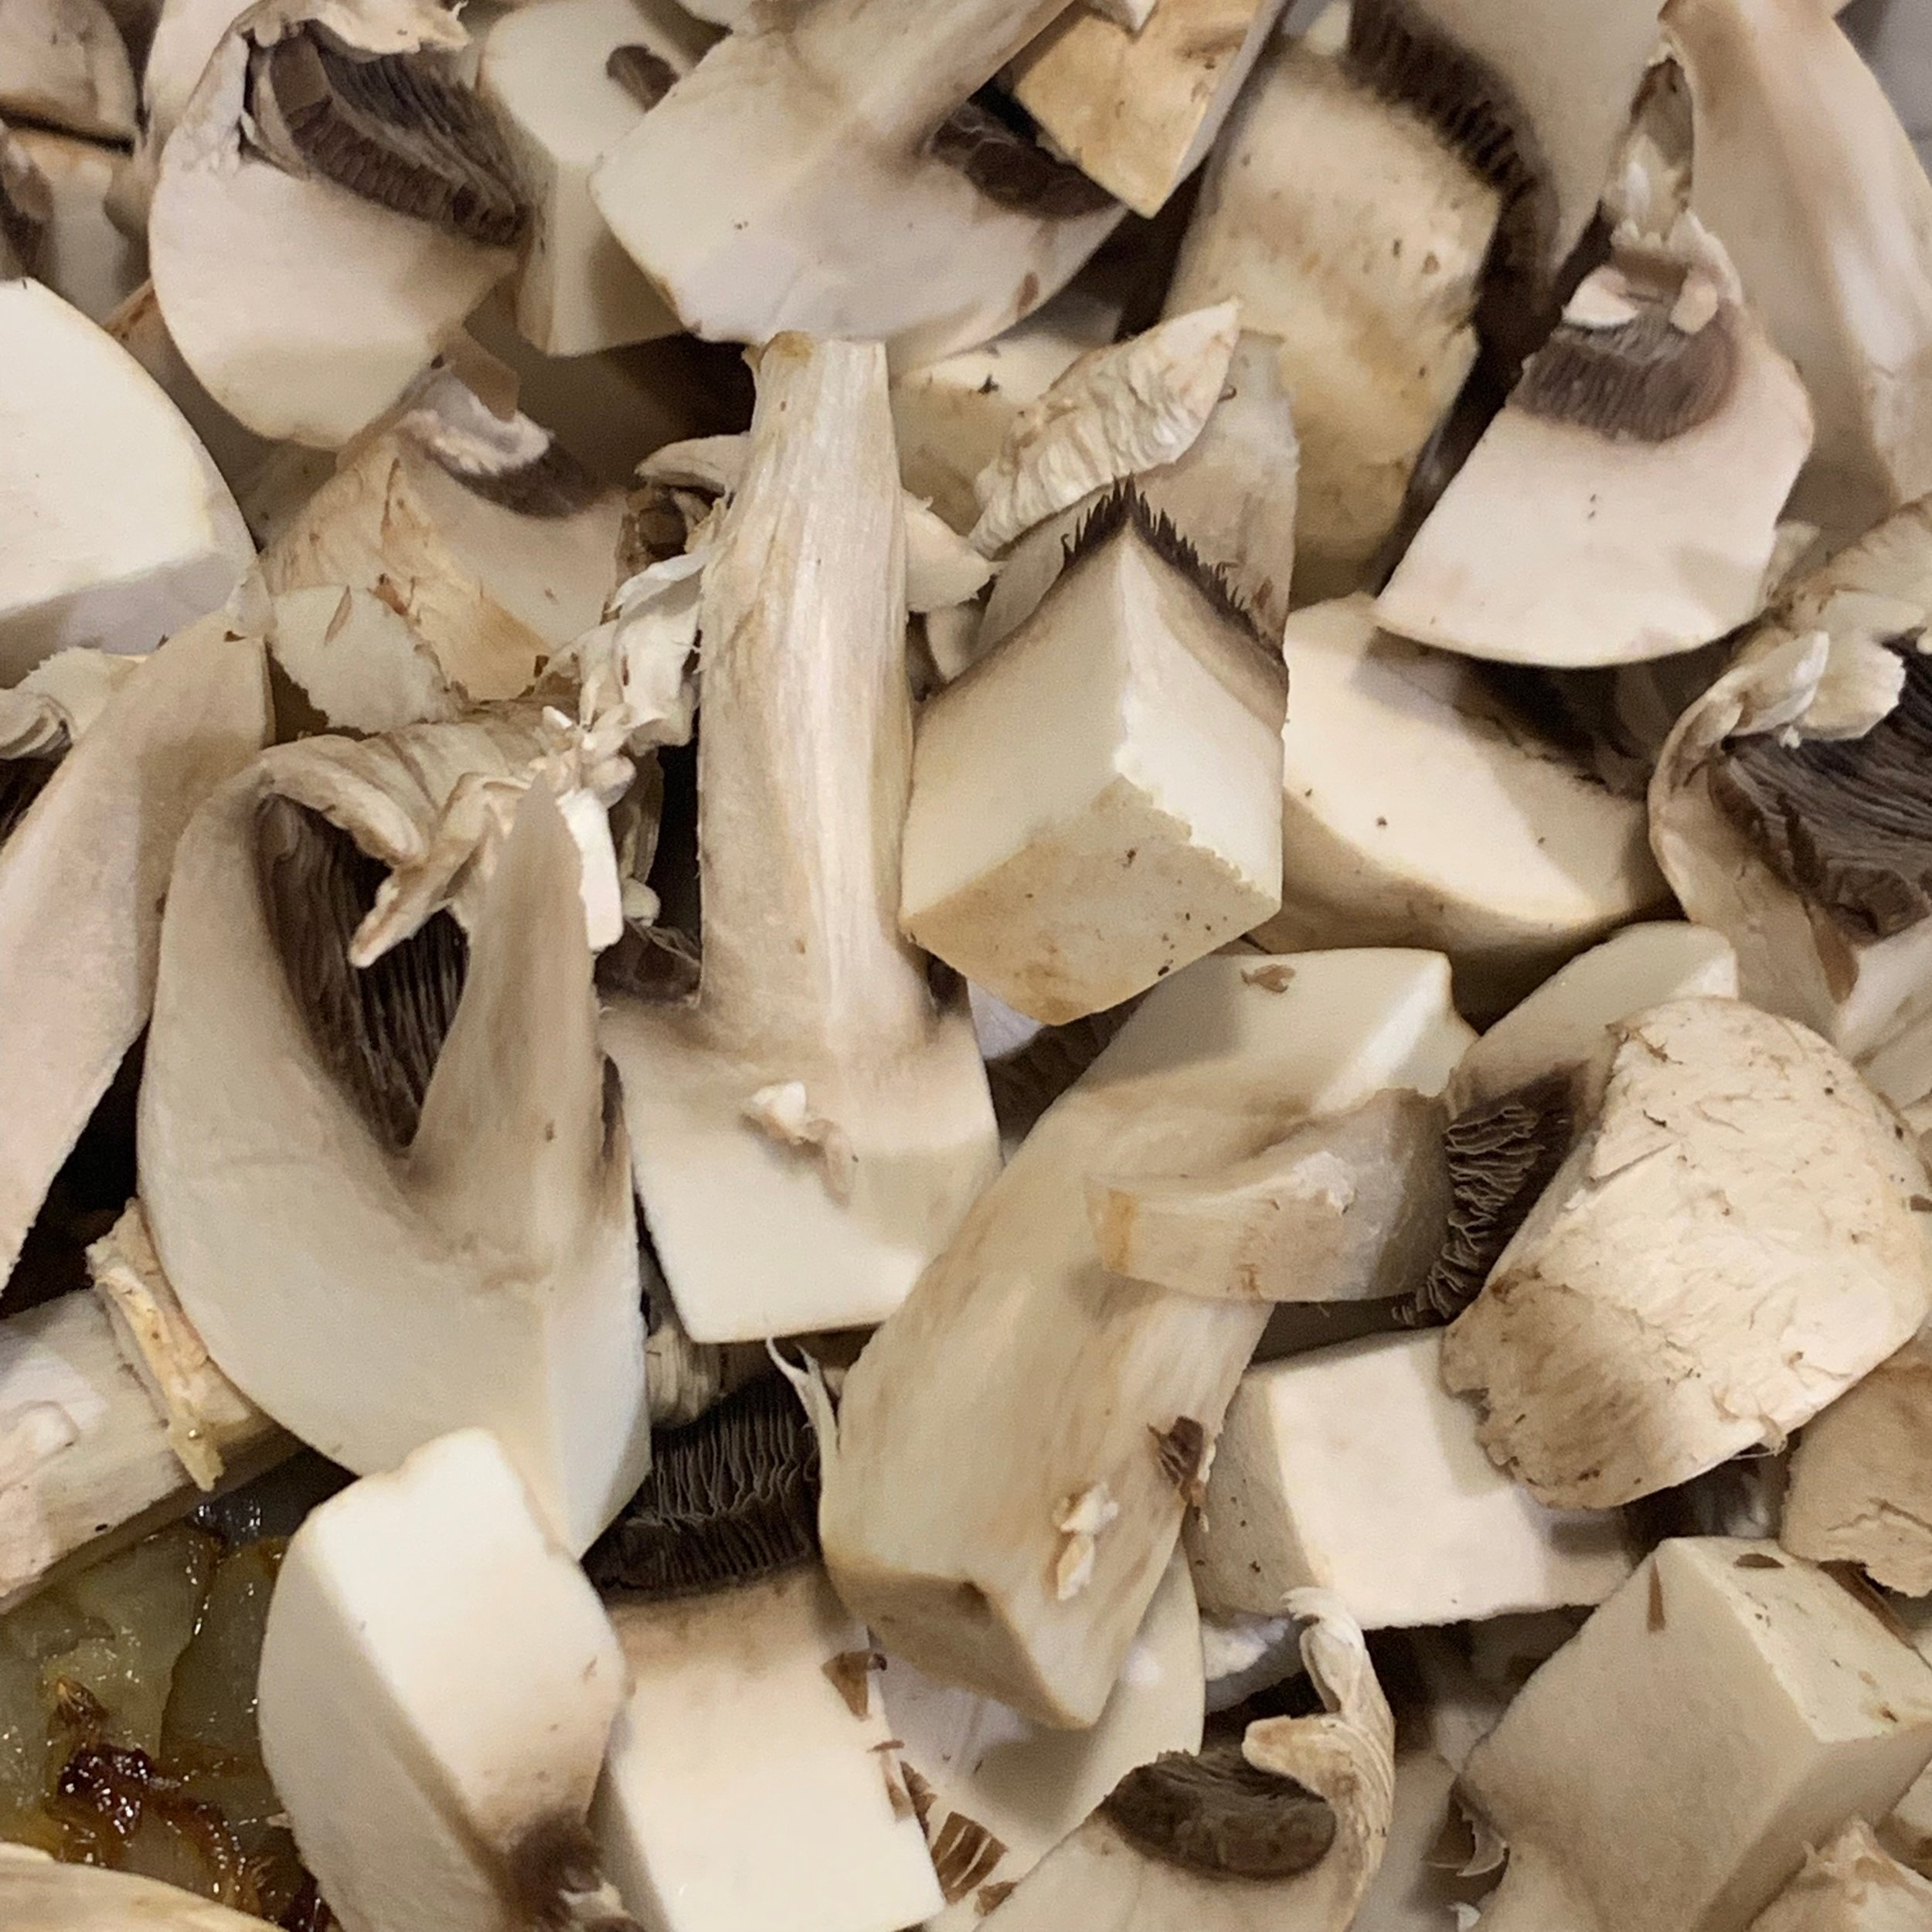 chop your mushrooms coarsely